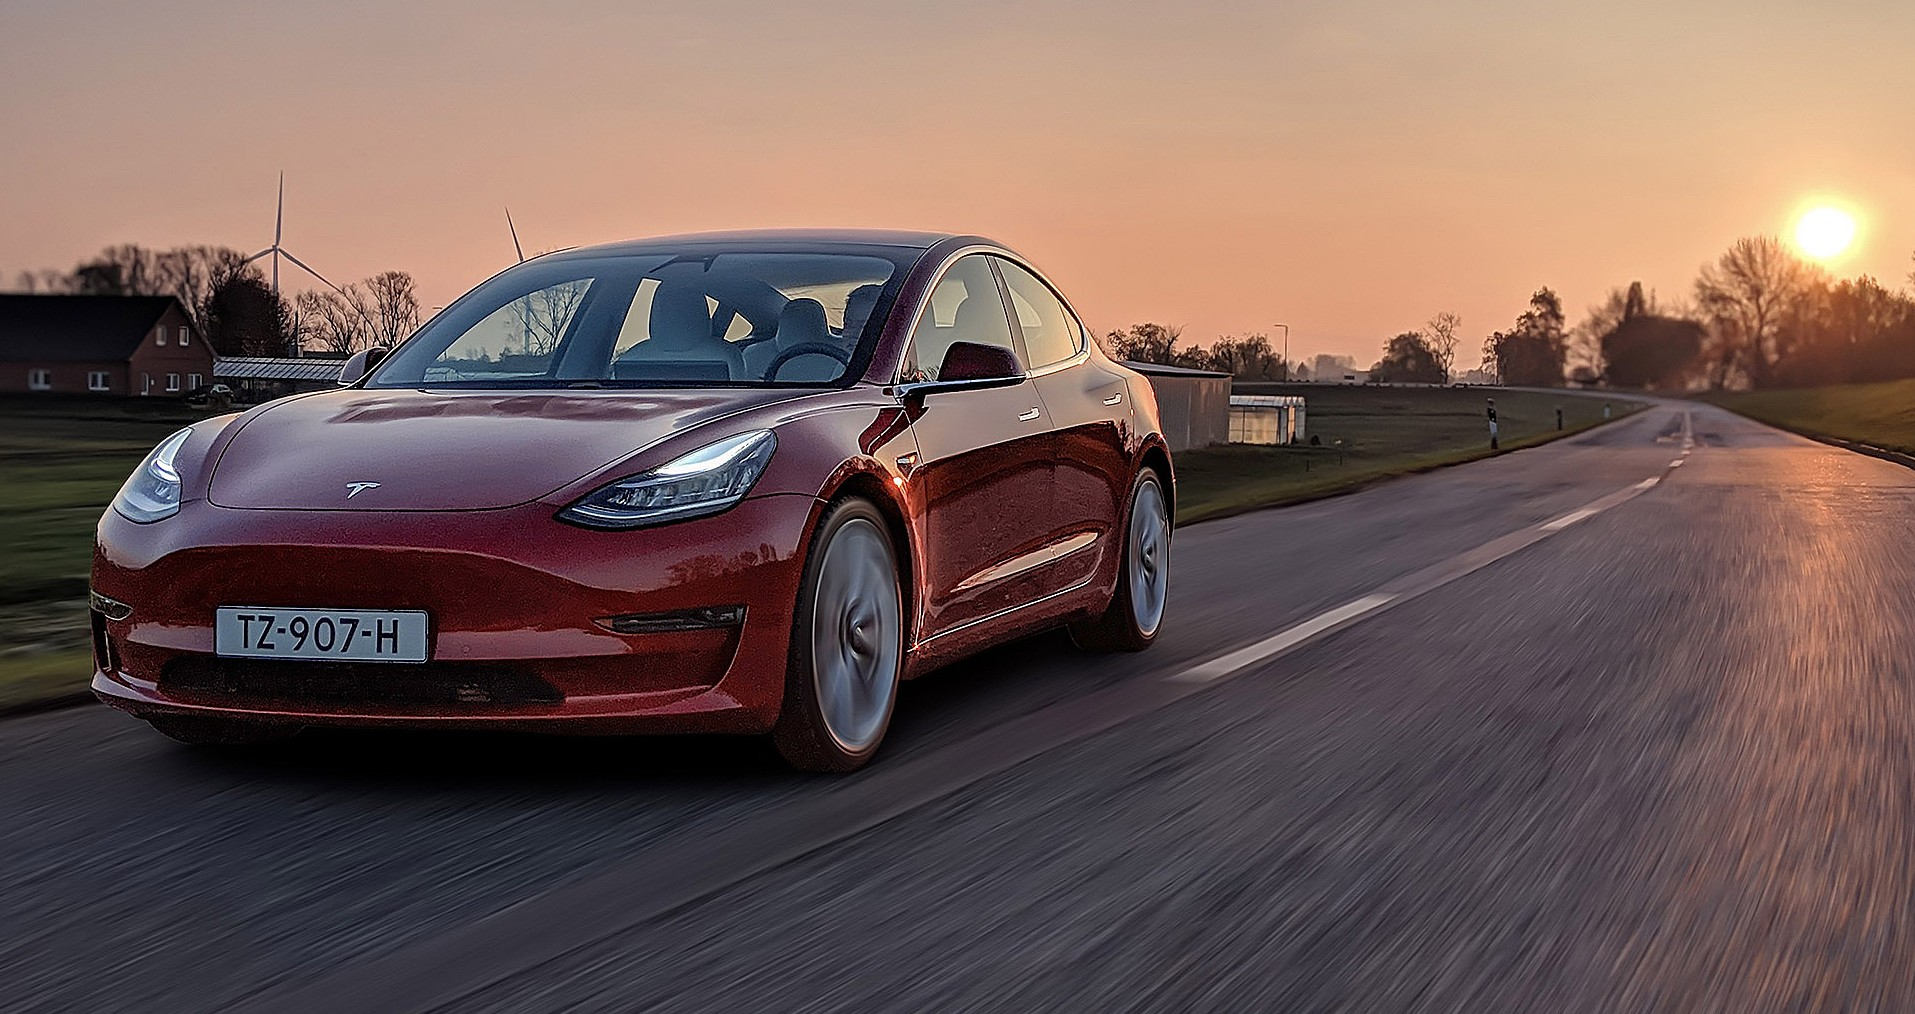 Tesla Model 3 makes it as one of Motortrend's Car of the Year Top 3 finalists